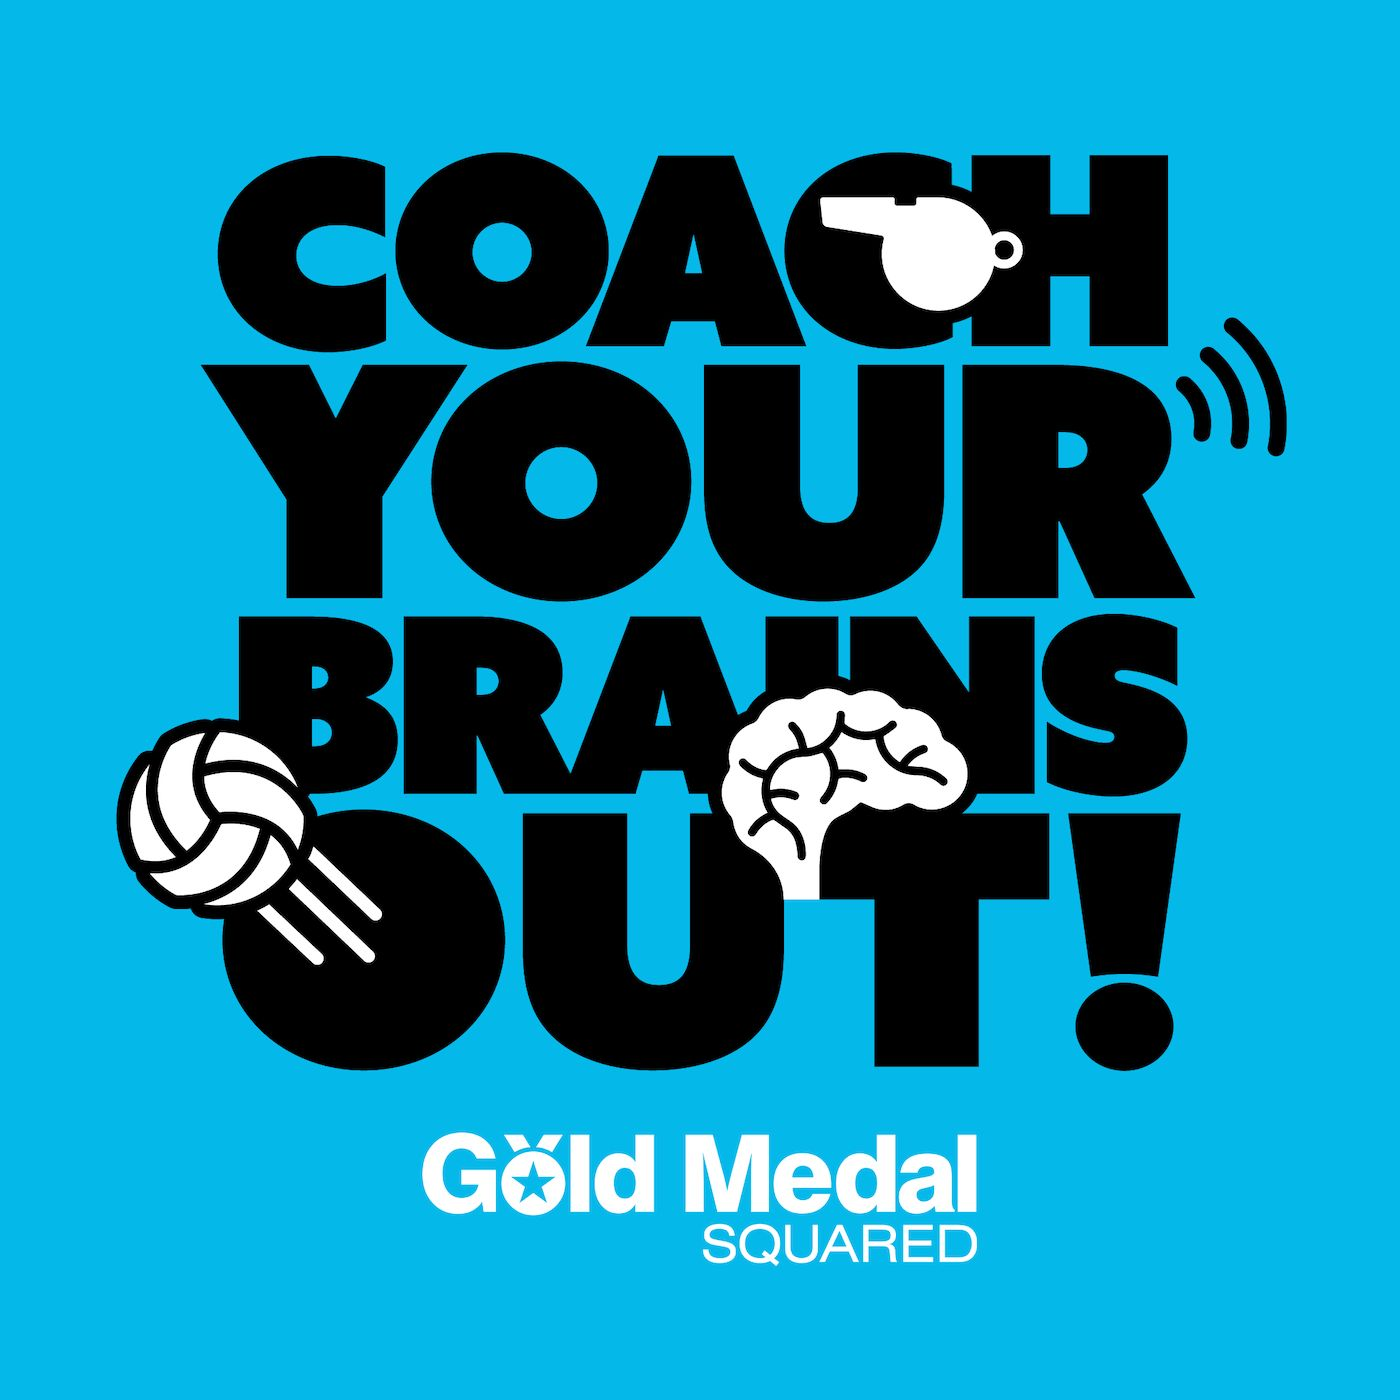 Coach Your Brains Out, by Gold Medal Squared